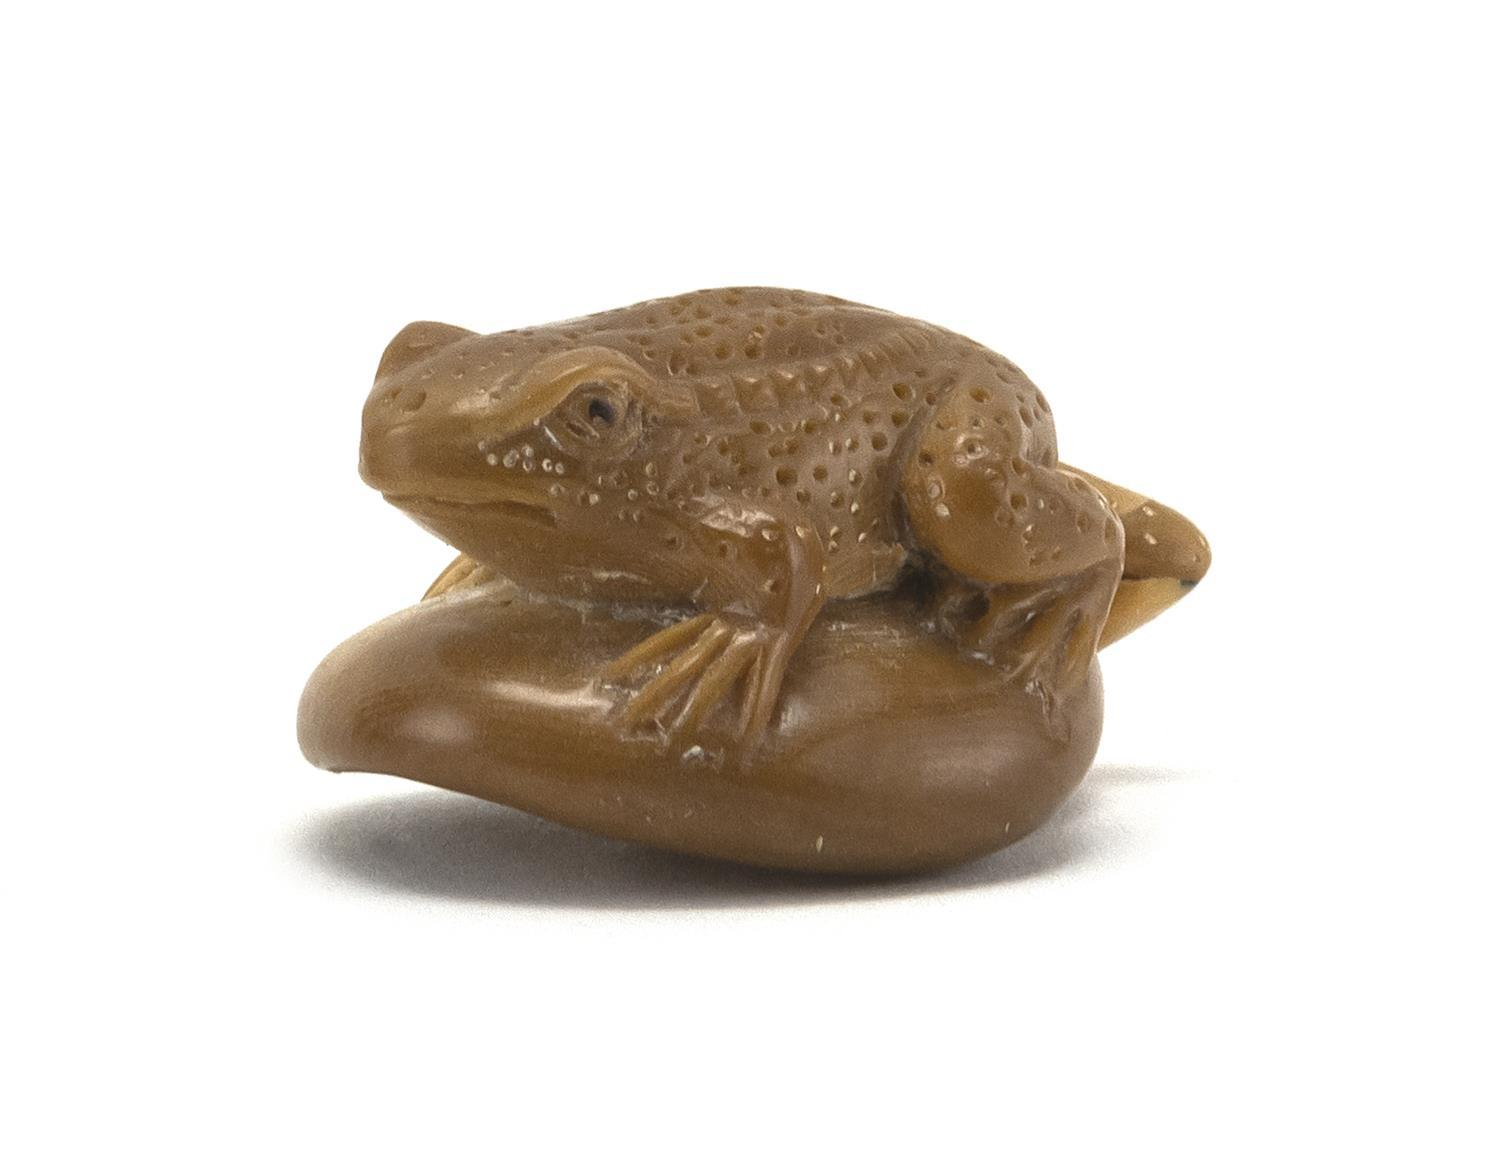 "JAPANESE PALM NUT NETSUKE In the form of a frog on a mushroom. Signed. Length 1.5""."